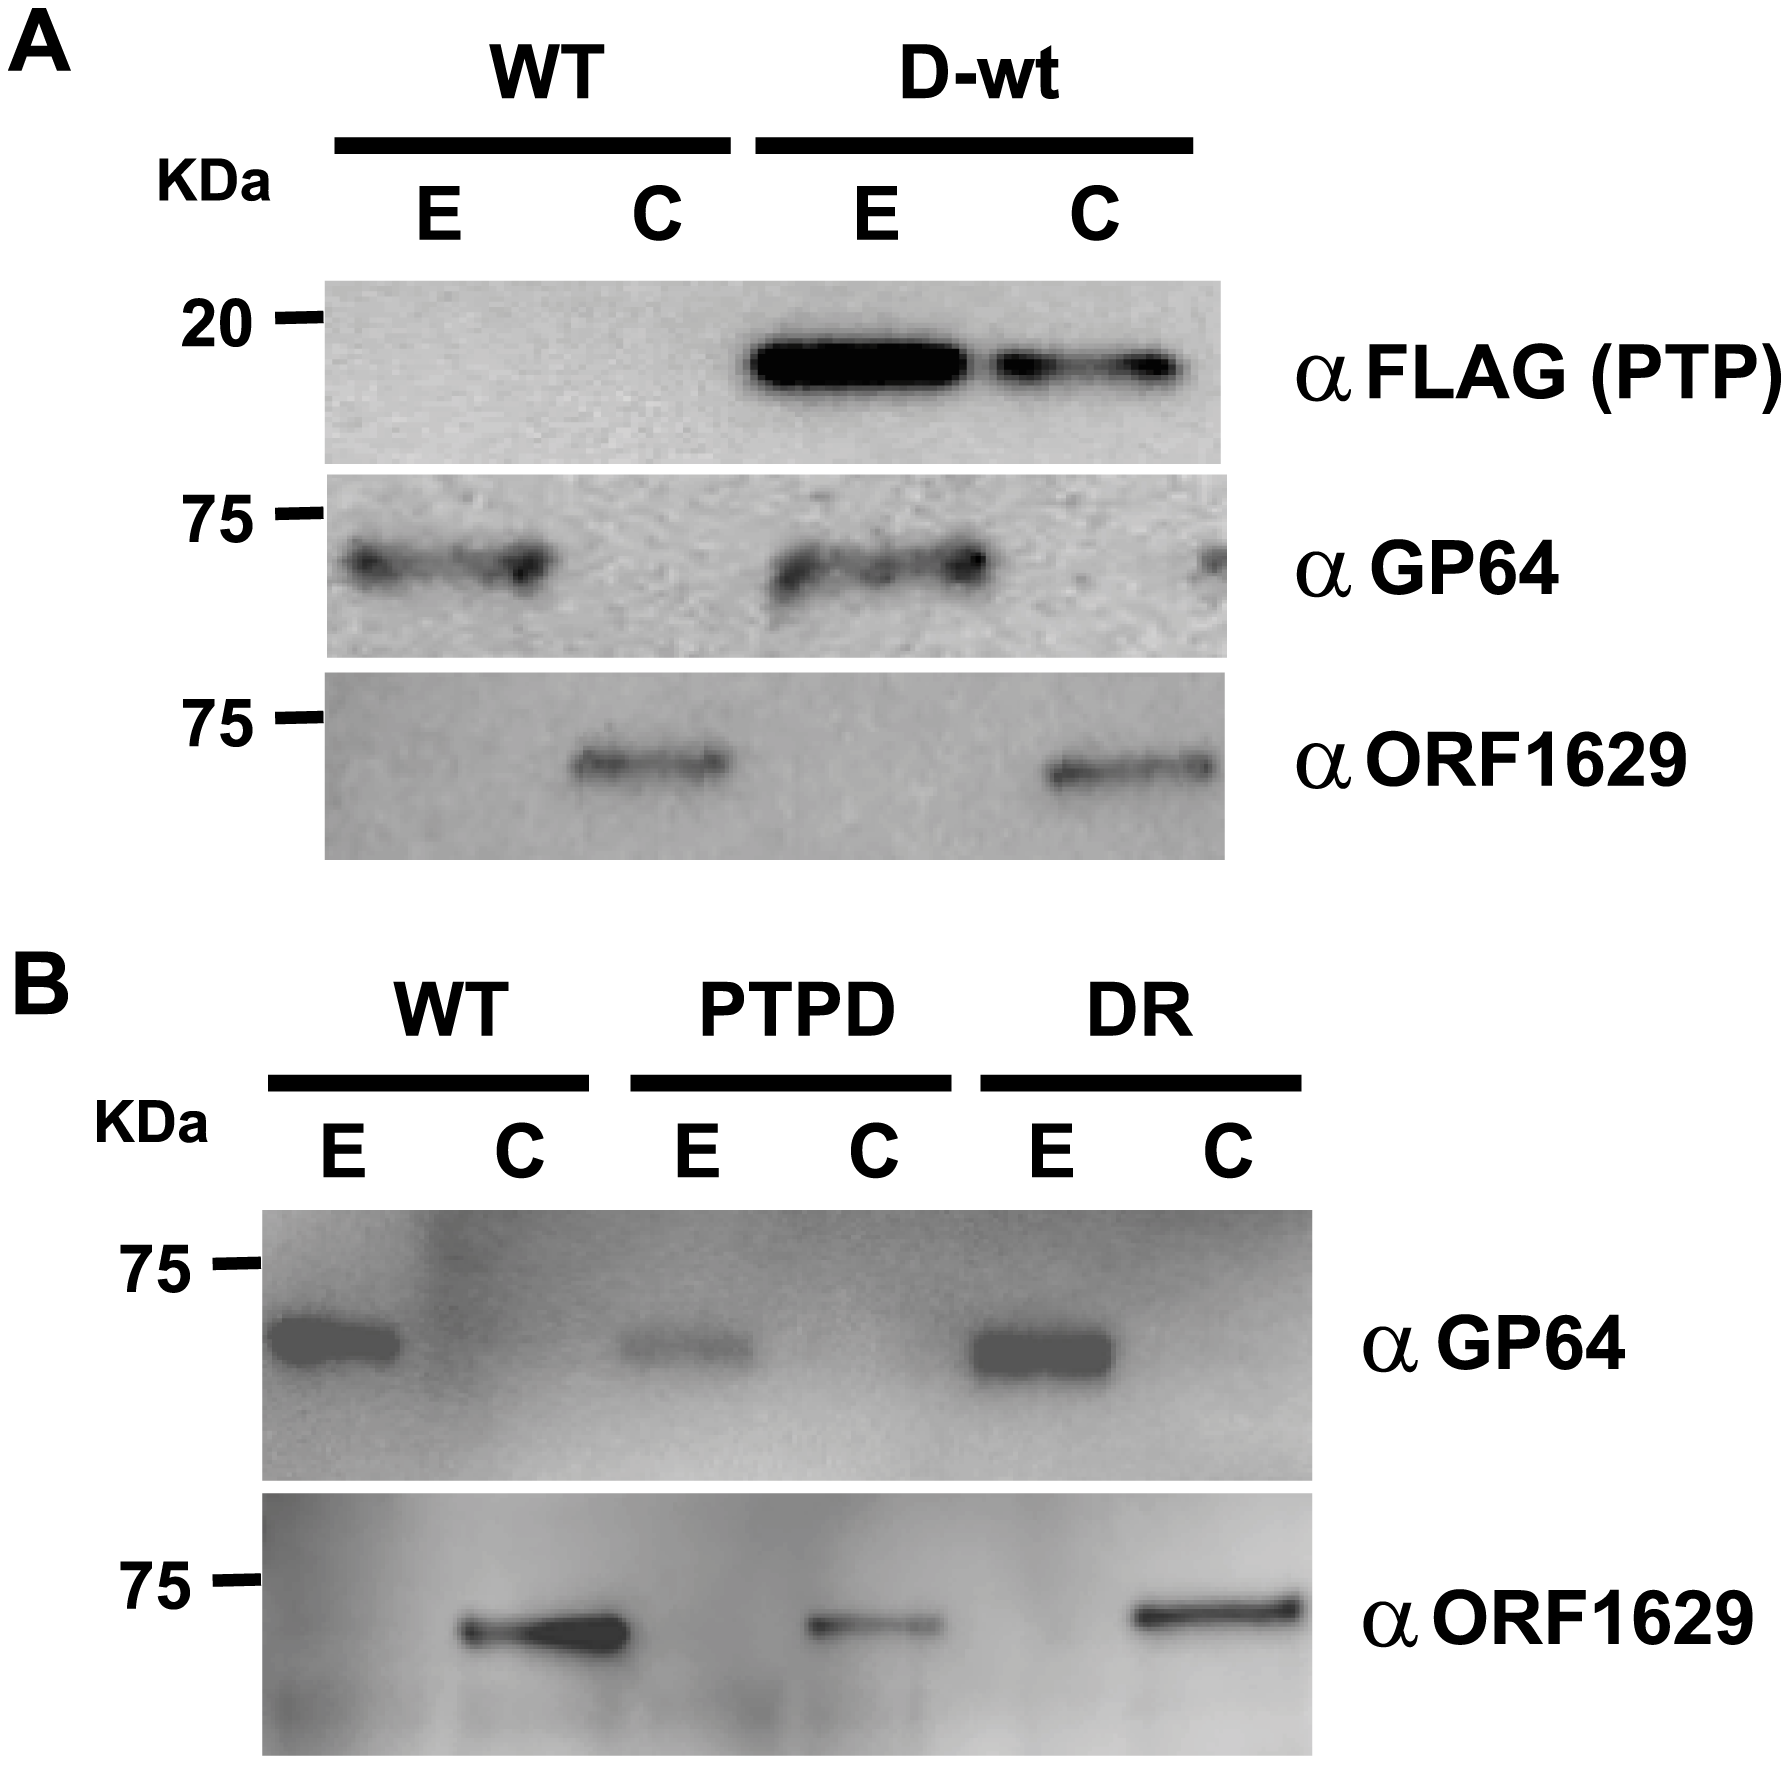 PTP is an envelope-associated protein required for the production of normal virions.